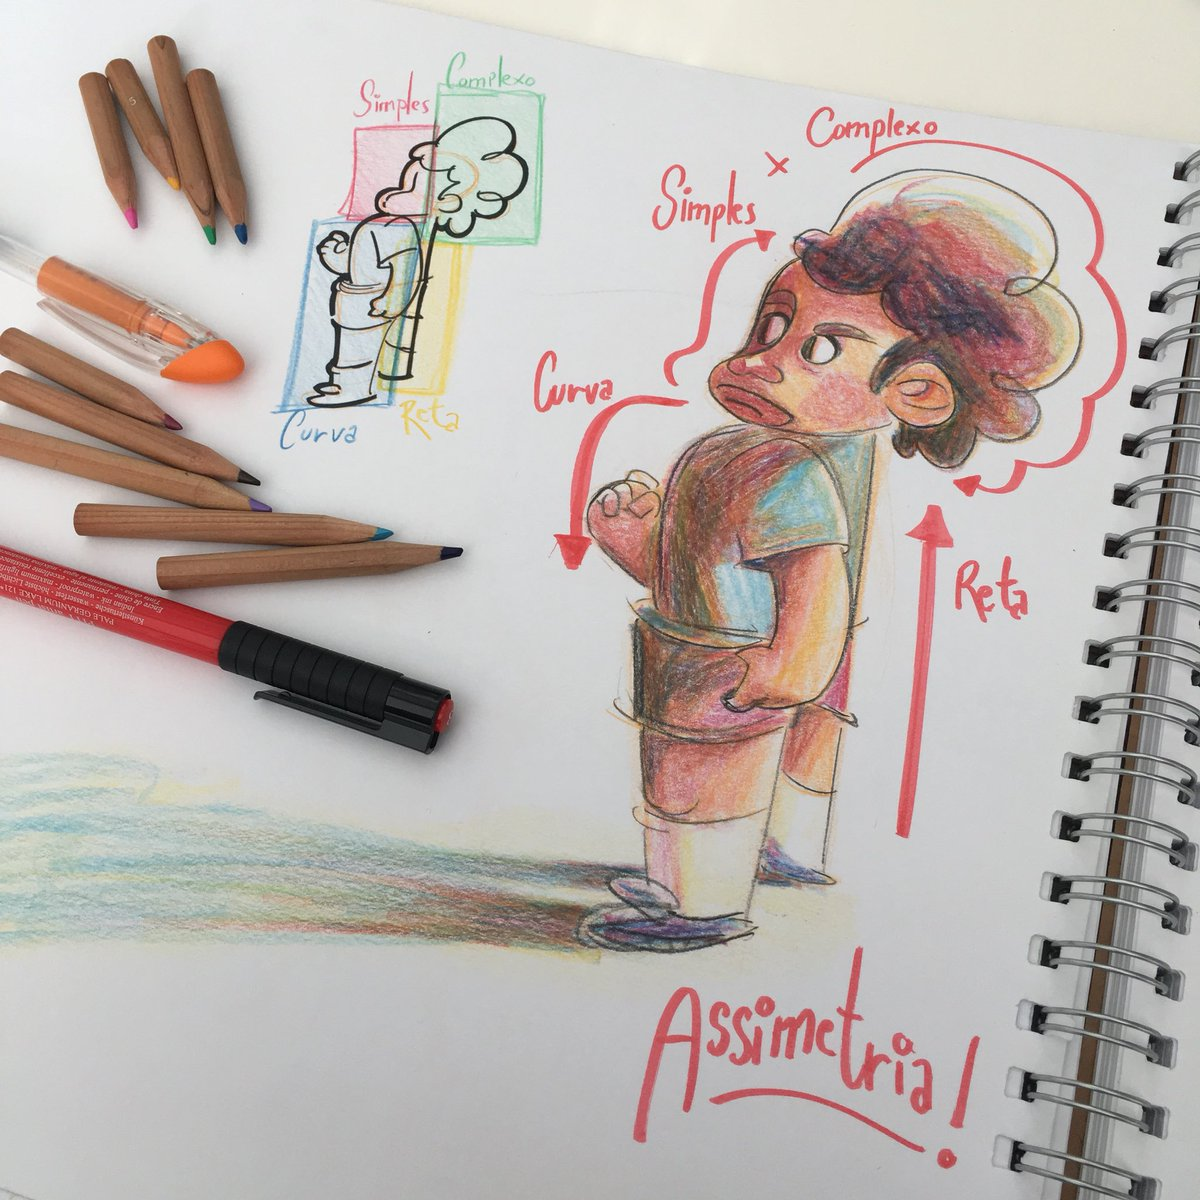 Straights x Curves, and Simple x Complex, are great ways to produce assimetry and variety in your characters! #arttips   #characterdesign #sketch #sketchbook<br>http://pic.twitter.com/CaREEYVfmK